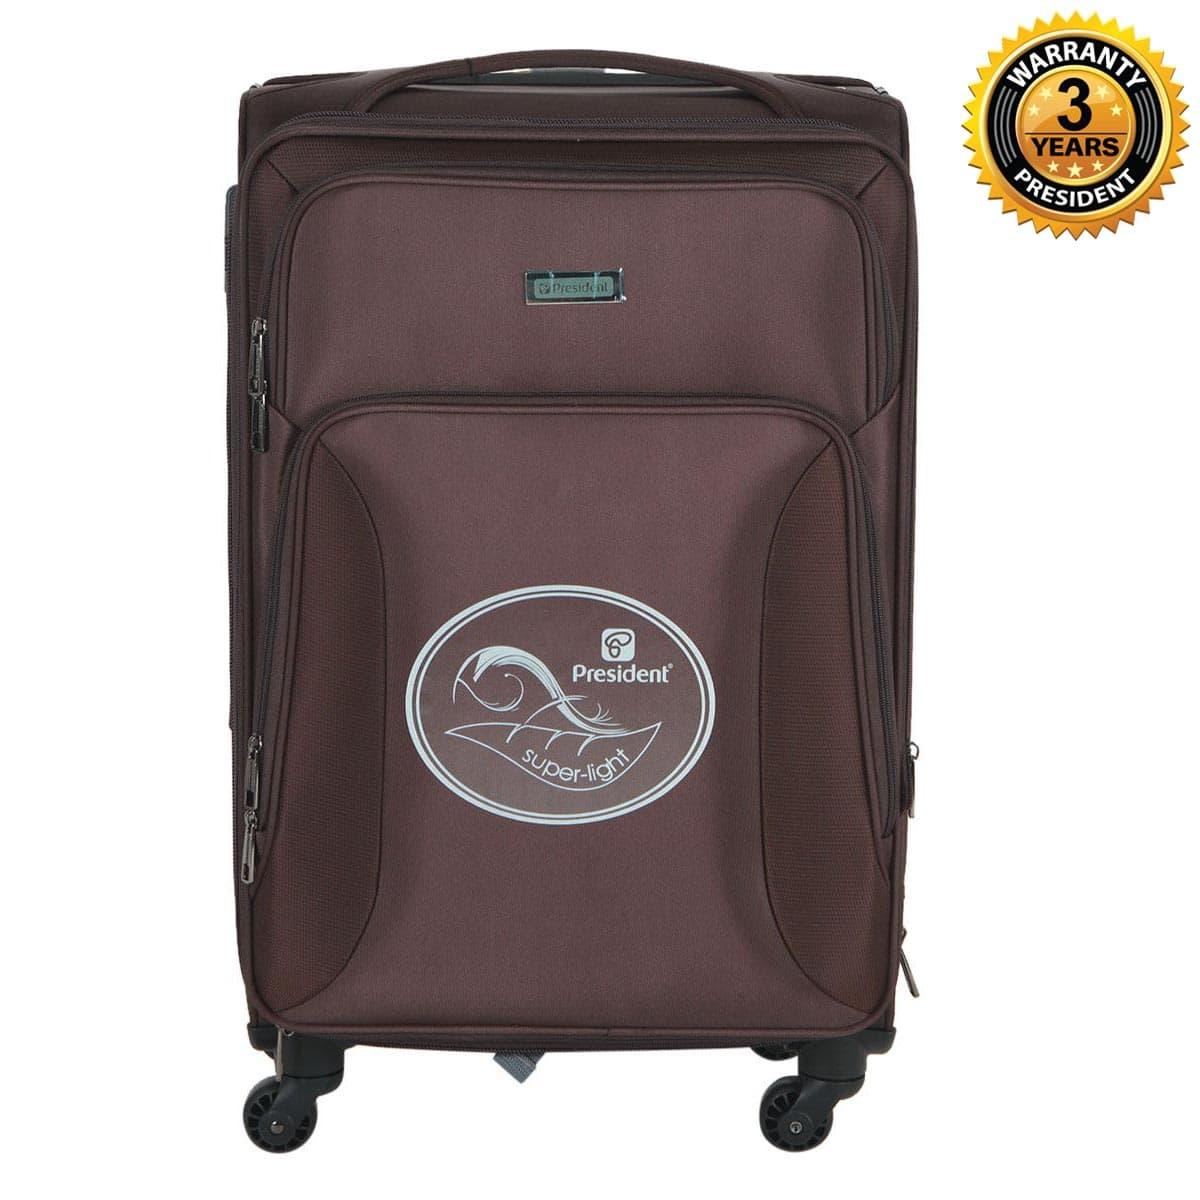 9bdcbace26aa PRESIDENT 24 Inch Carry On Trolley Bag Softside Spinner Luggage 4-Wheels  Suitcase Built-in YiF TSA Lock -COFFEE